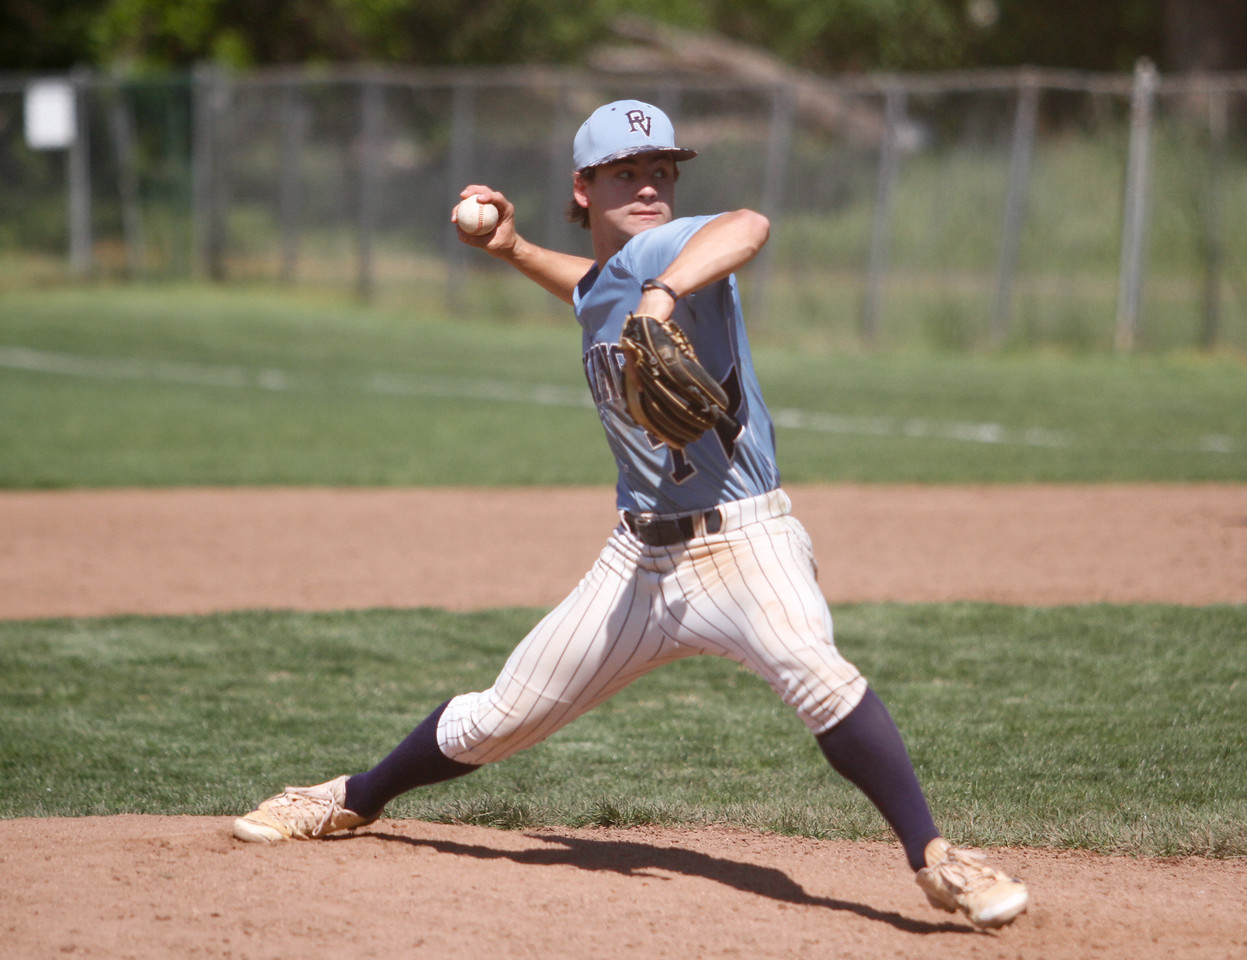 Pleasant Valley's Colby Harrison pitches against Red Bluff in a doubleheader baseball game Tuesday April 18, 2017 at Doryland Field in Chico, California. (Emily Bertolino -- Enterprise-Record)